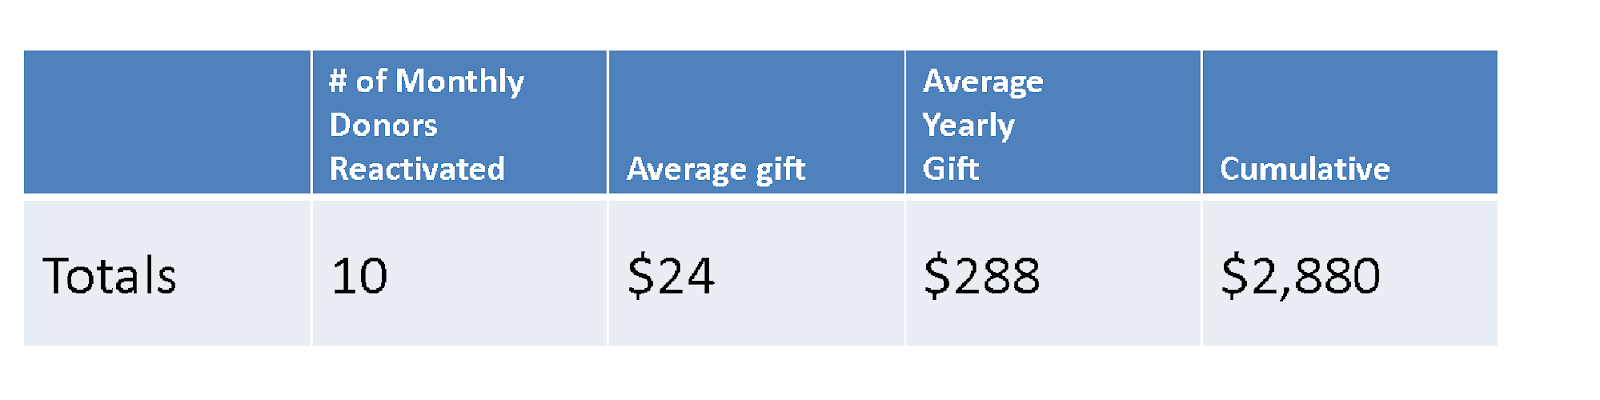 Value of Donation Calculation